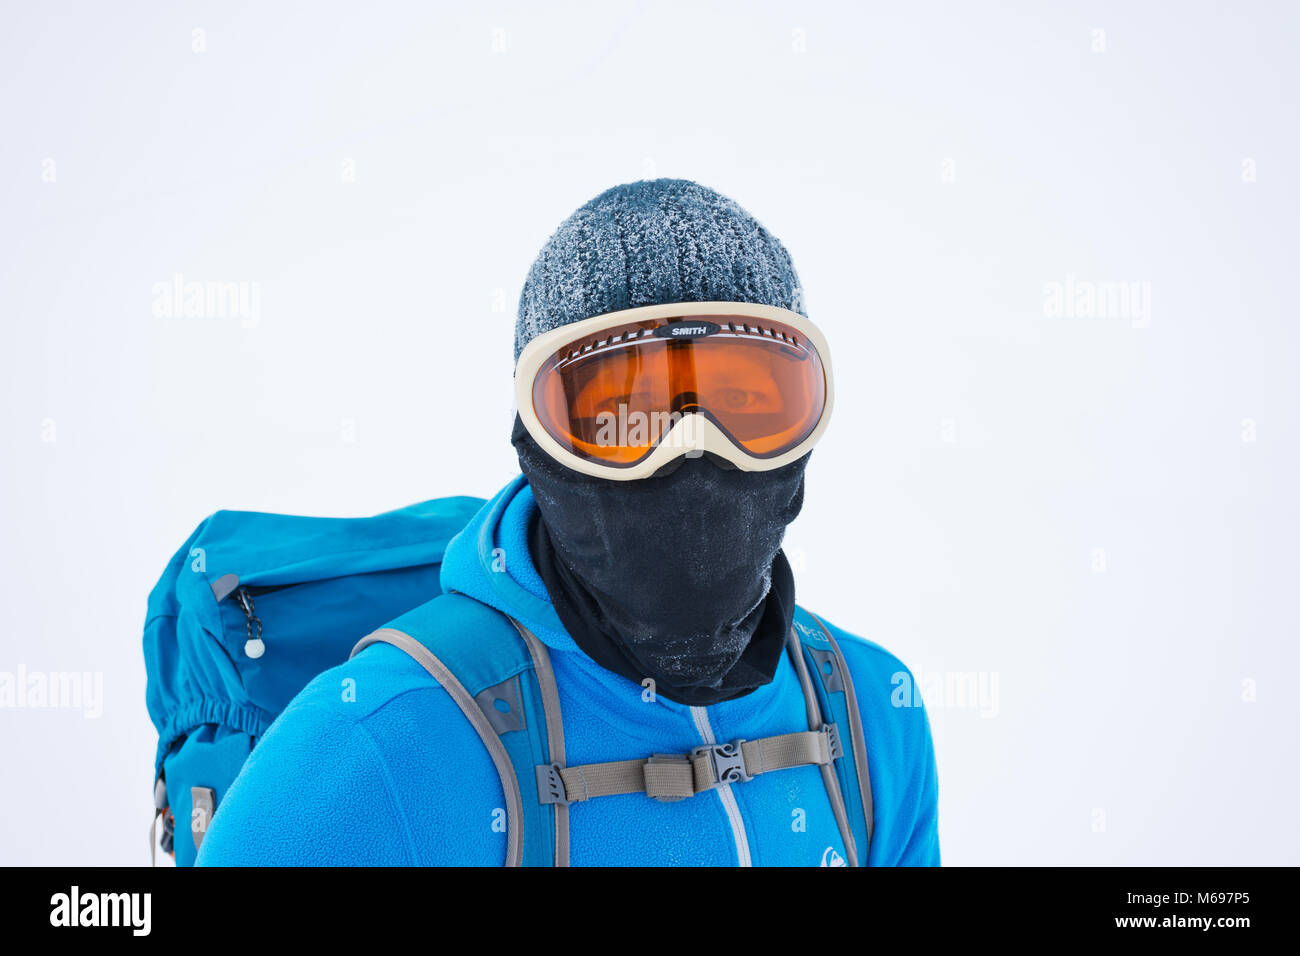 Portrait of ski mountaineer covering his face, with snow white background on a cold foggy winter day, wearing ski - Stock Image